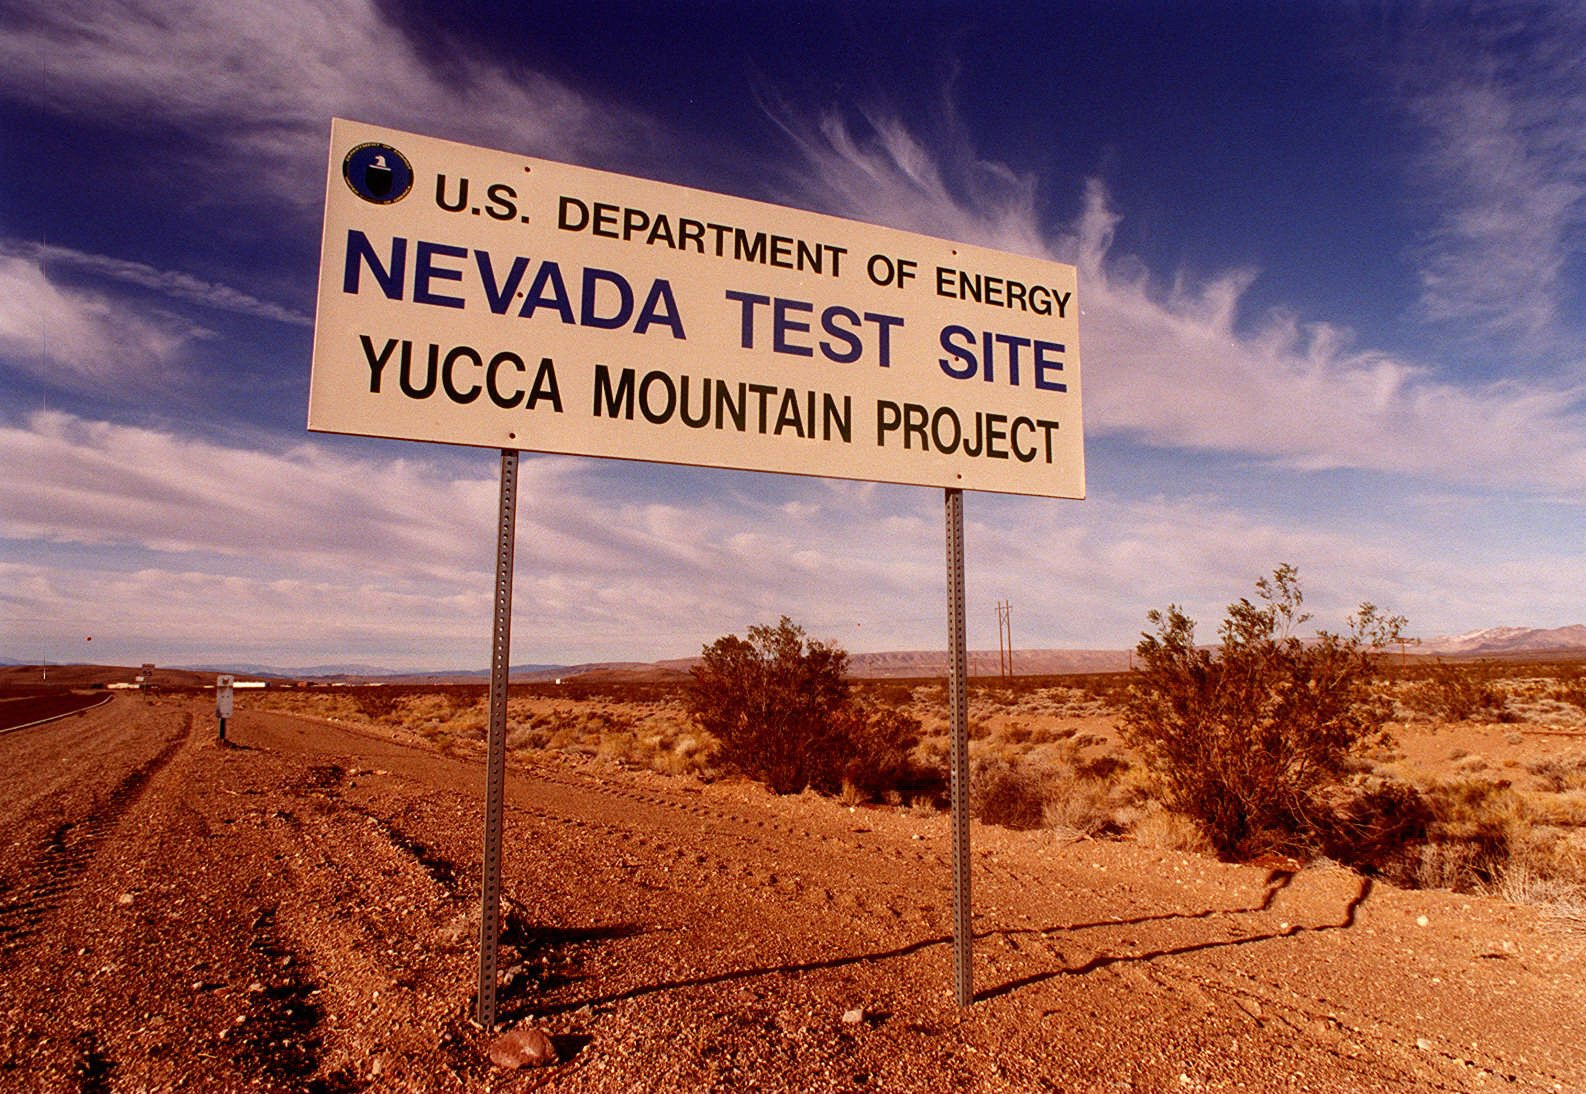 yucca mountains as the us perfect nuclear waste storage The nuclear regulatory commission on thursday released a long-delayed report on the suitability of yucca mountain as a disposal spot for nuclear waste, finding that the design met the commission.